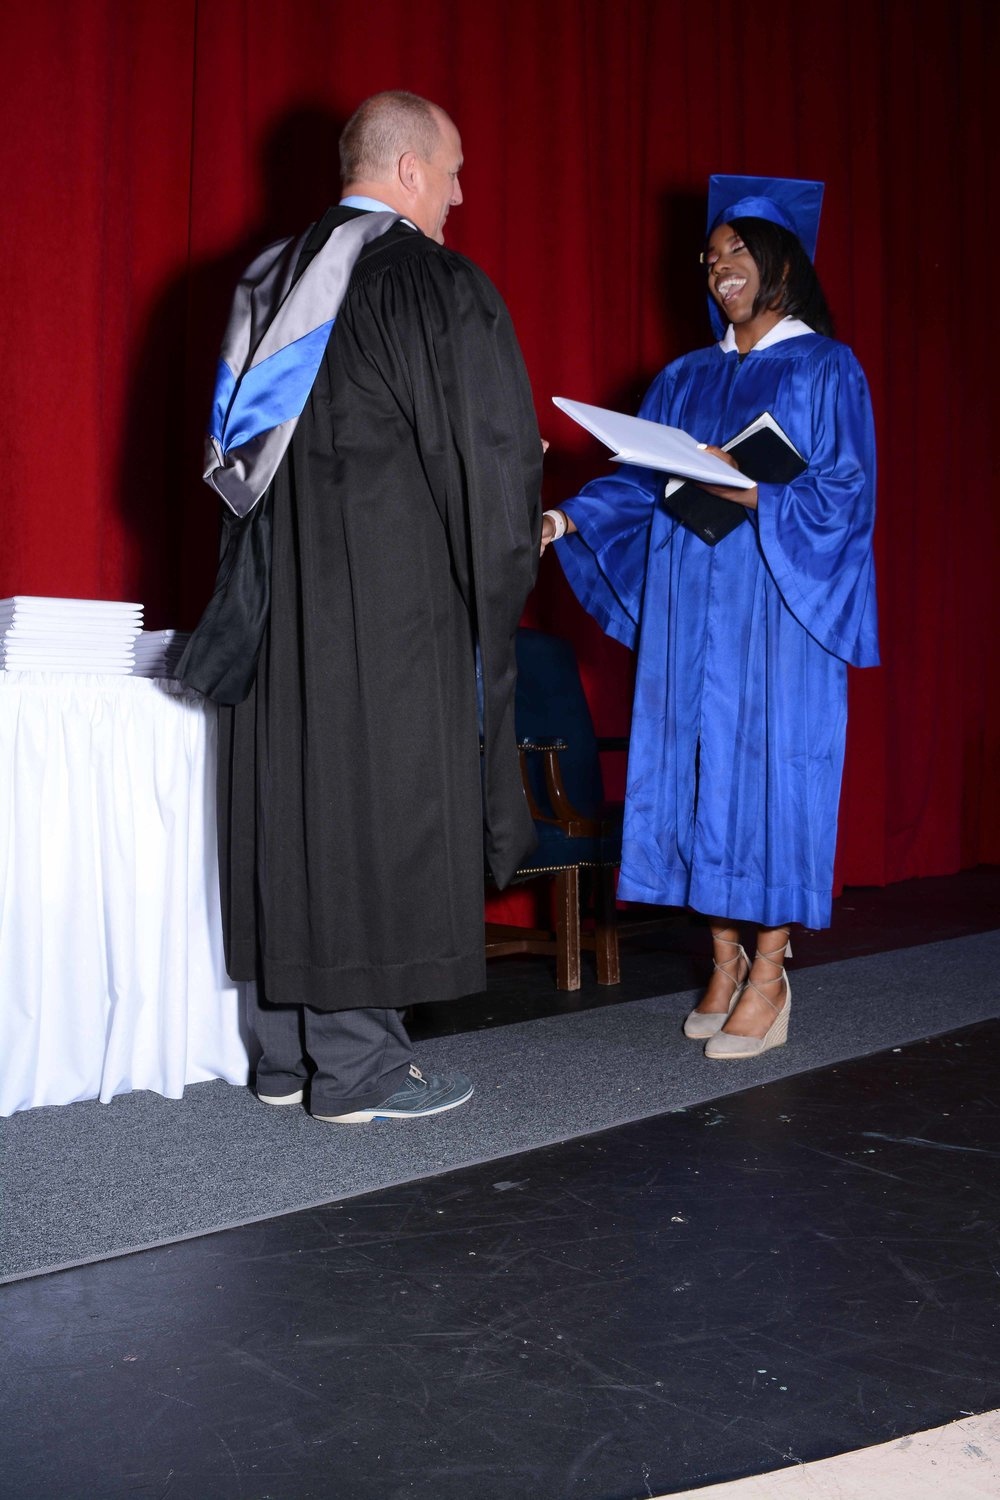 May14 Commencement121.jpg